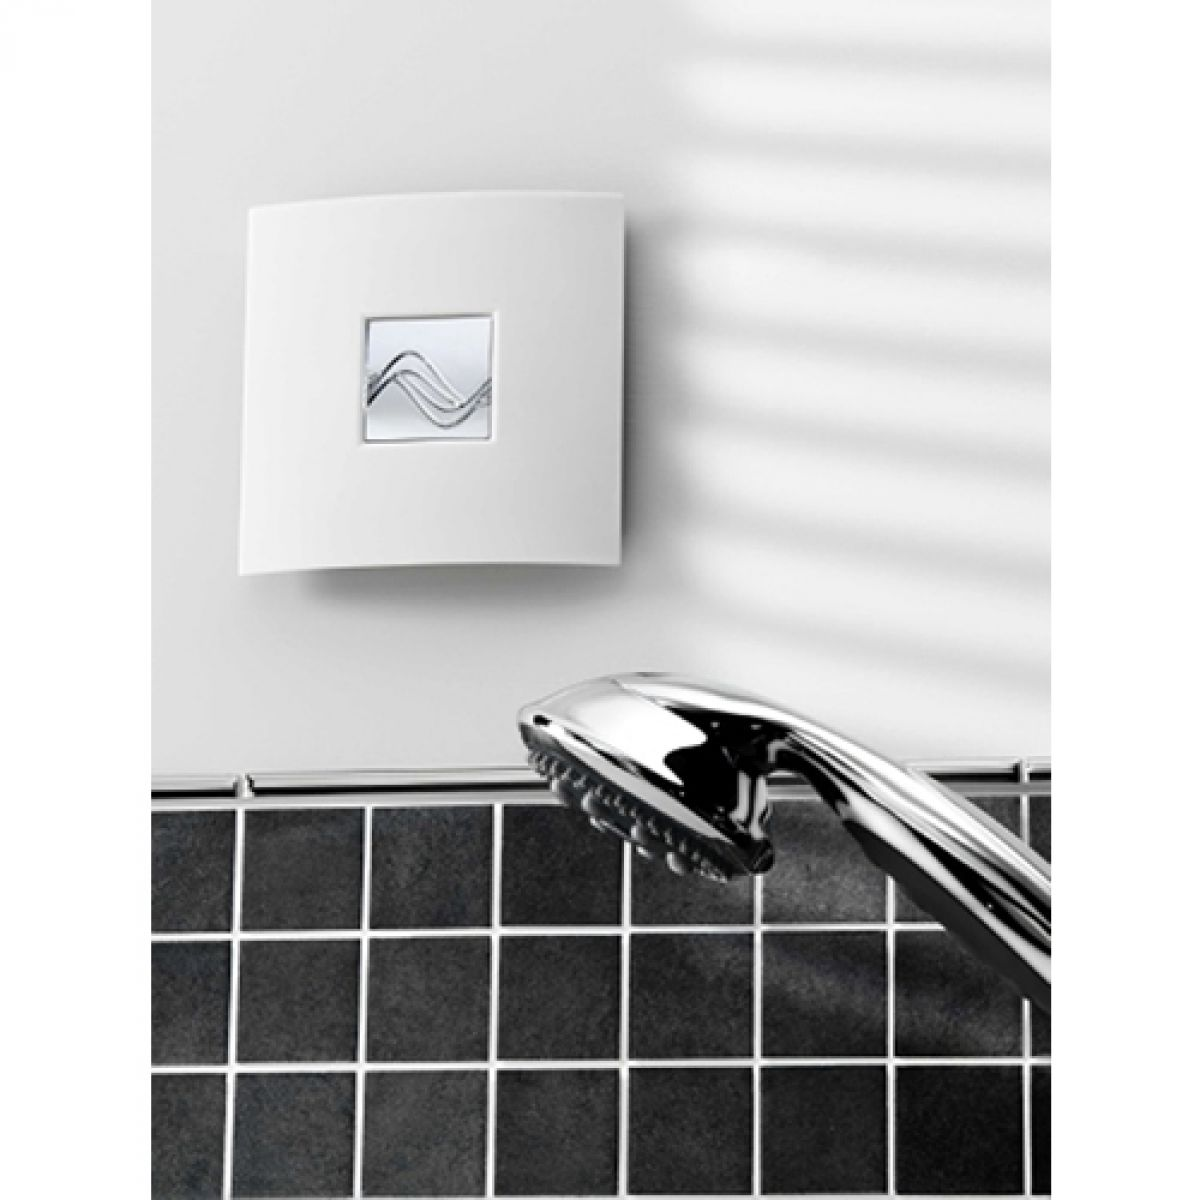 Bathroom Extractor Fan zehnder silent wall fan (ip24) : uk bathrooms